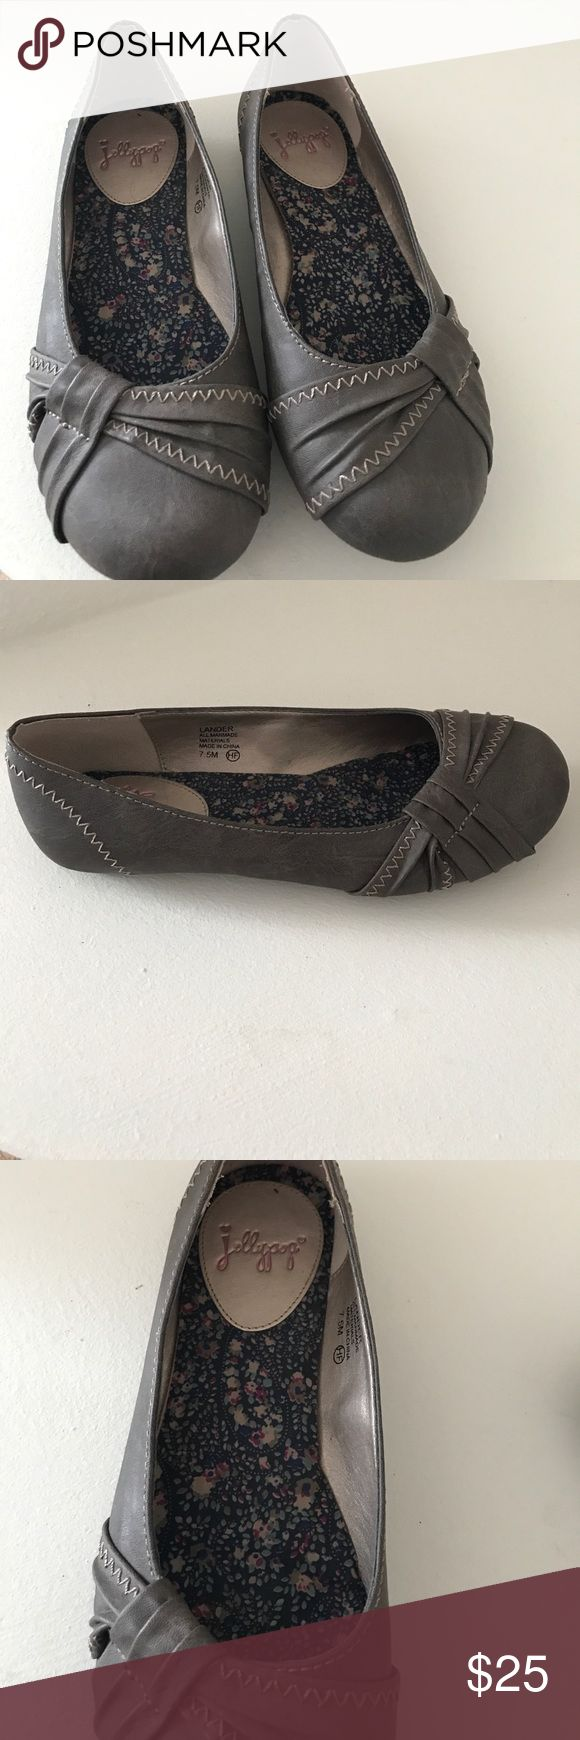 Flats by Jellypop Steel grey dress flats. Worn once. Size 7.5. Very cute! Does not fit me :( Jellypop Shoes Flats & Loafers